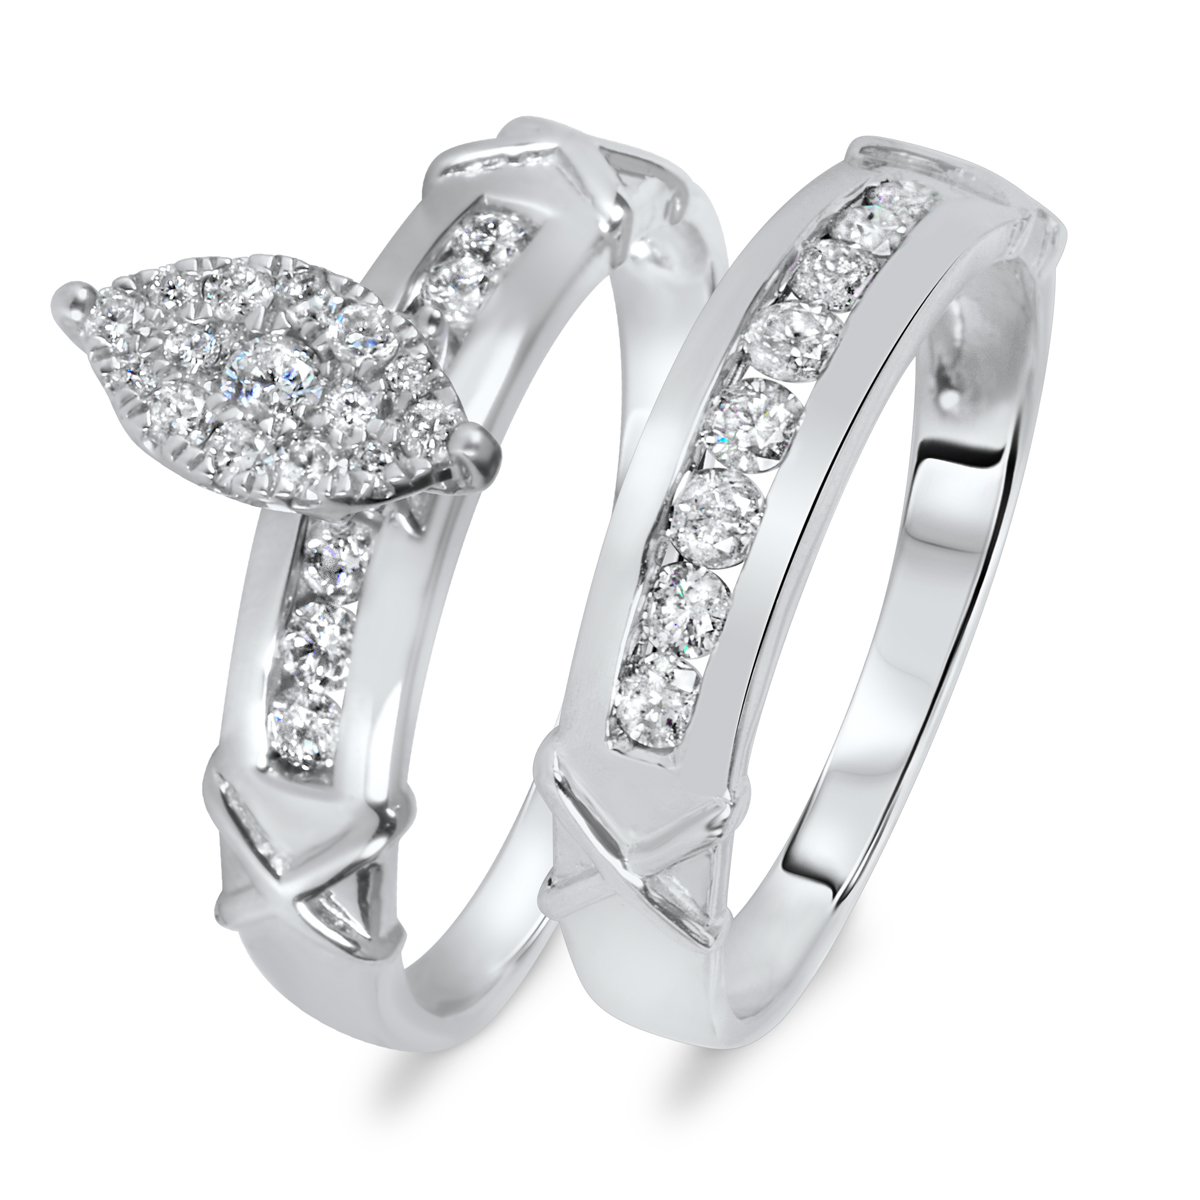 2/3 CT. T.W. Diamond Women's Bridal Wedding Ring Set 10K White Gold